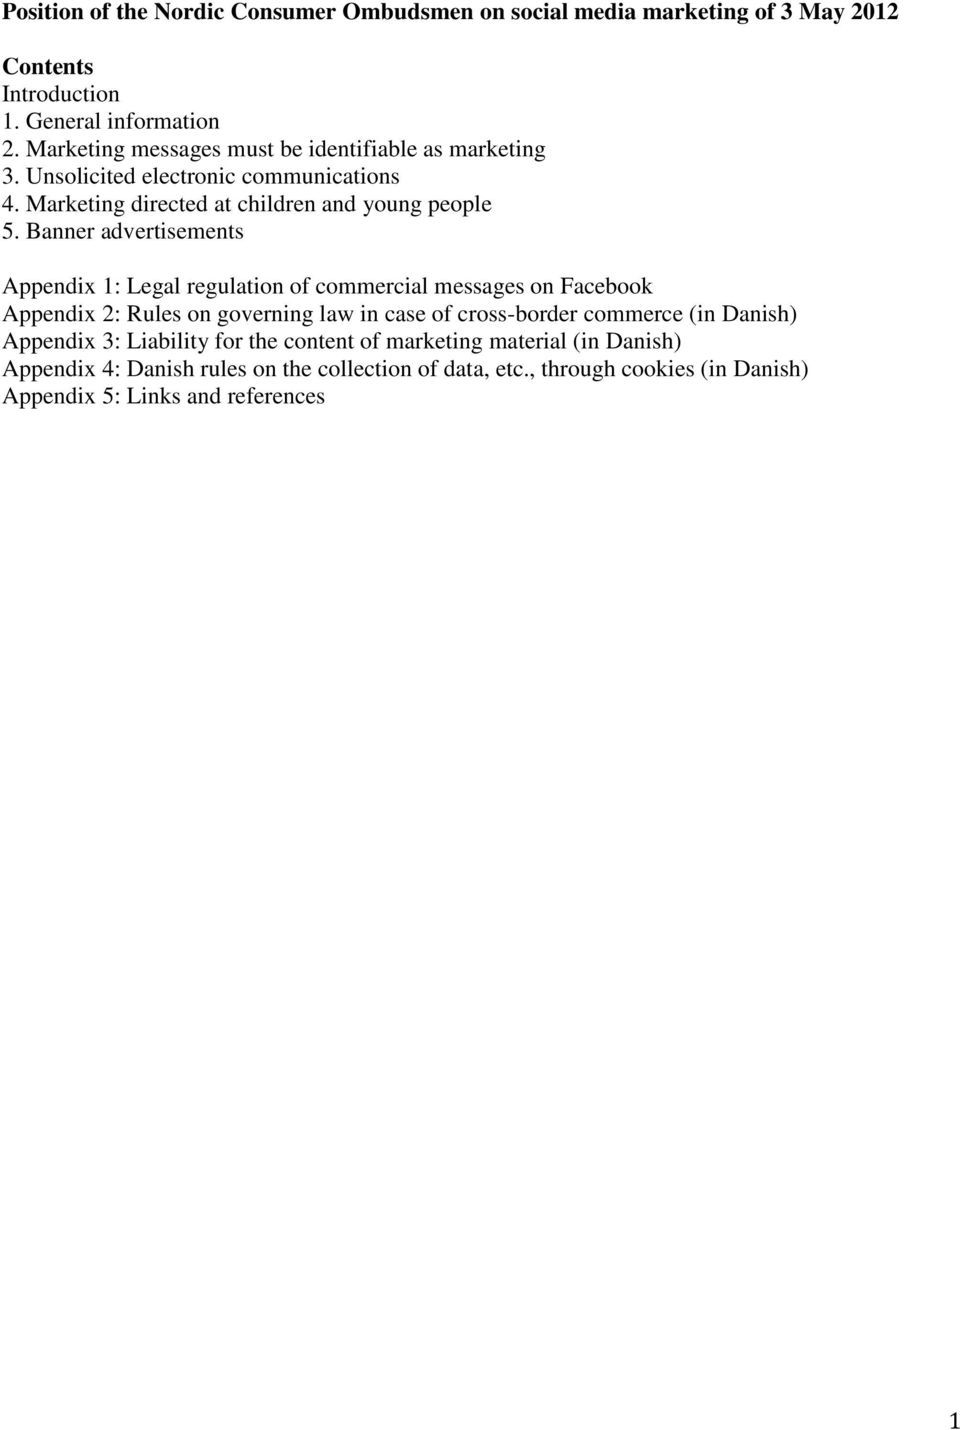 Banner advertisements Appendix 1: Legal regulation of commercial messages on Facebook Appendix 2: Rules on governing law in case of cross-border commerce (in